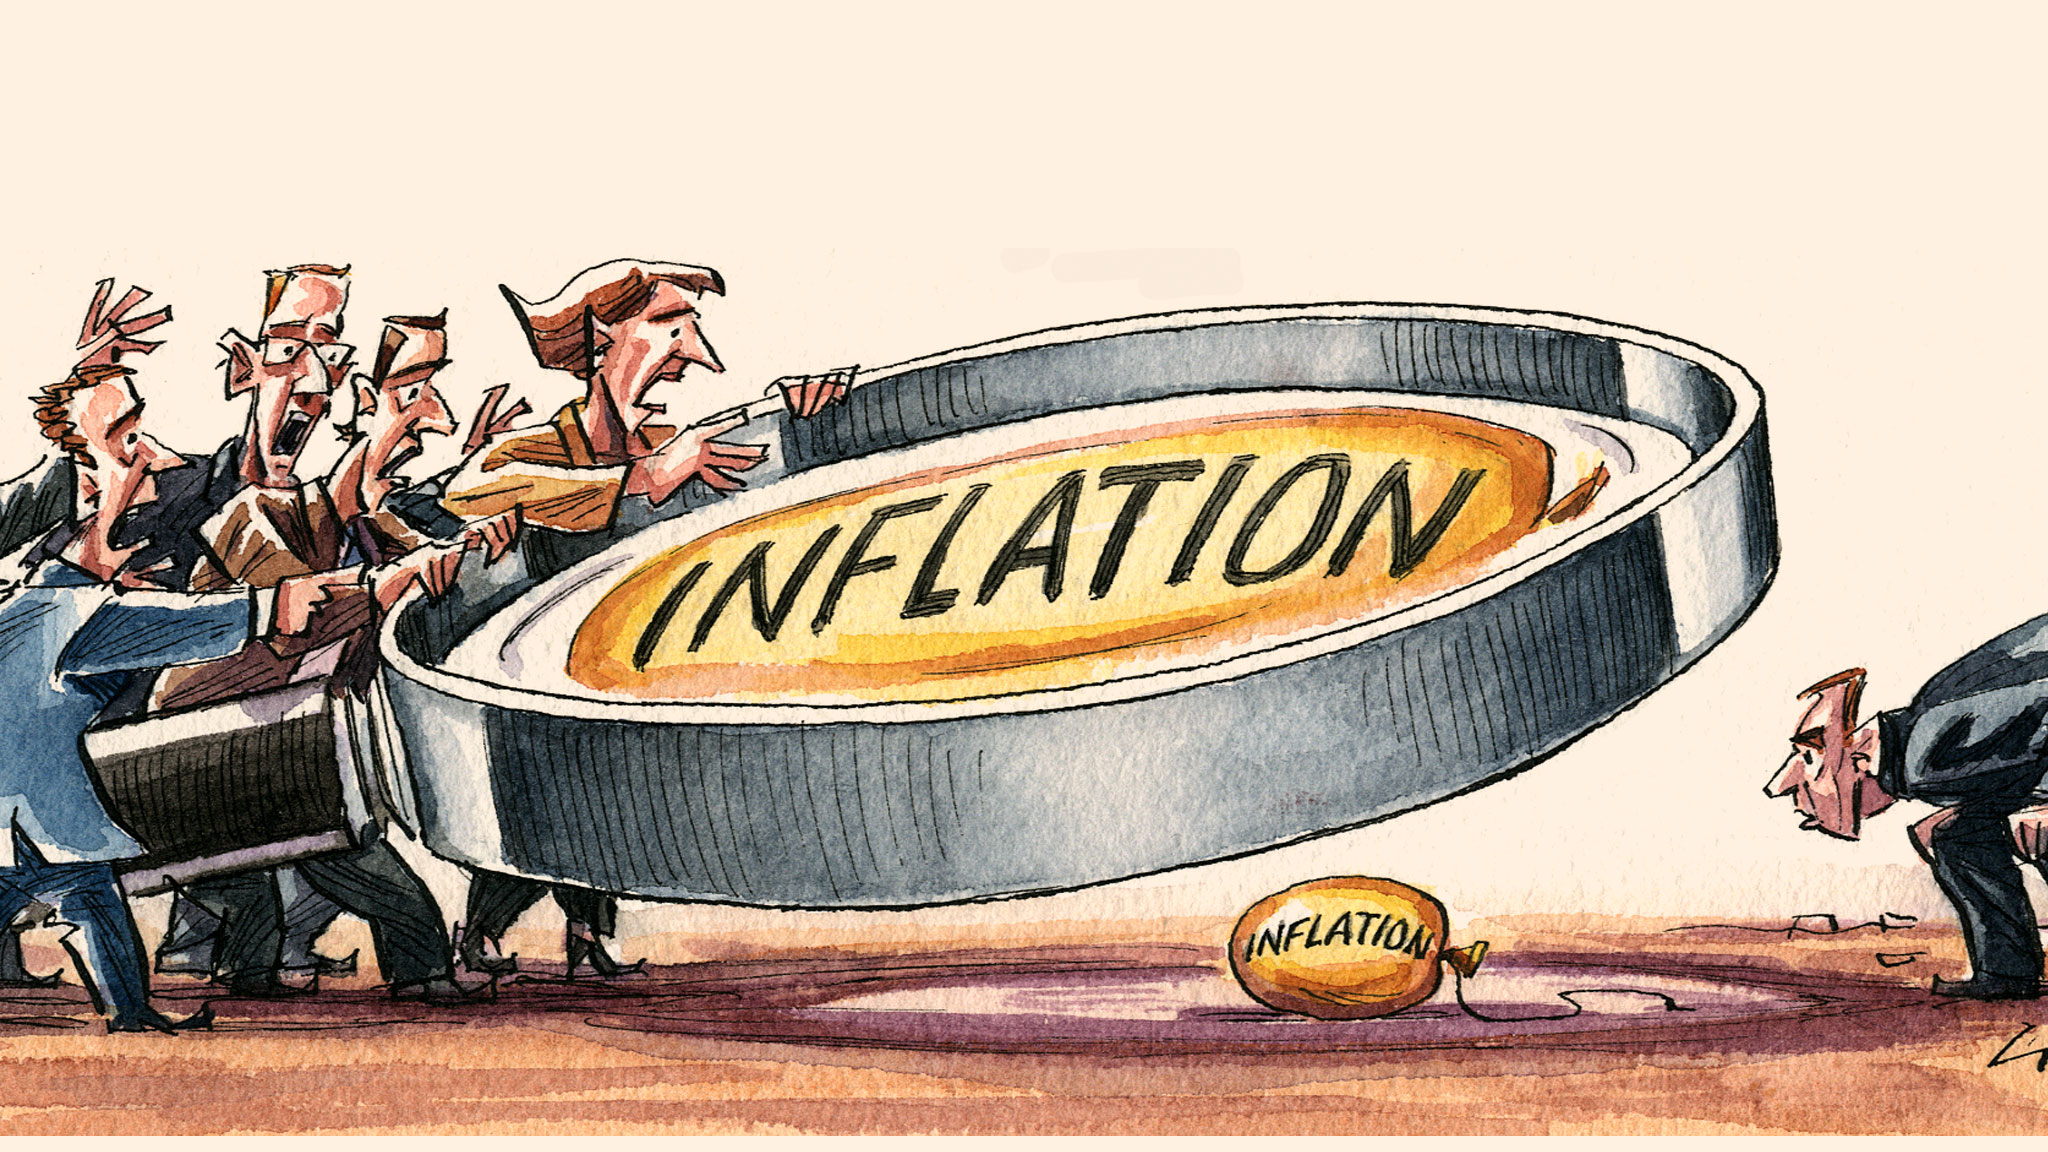 The overstated inflation danger | Financial Times